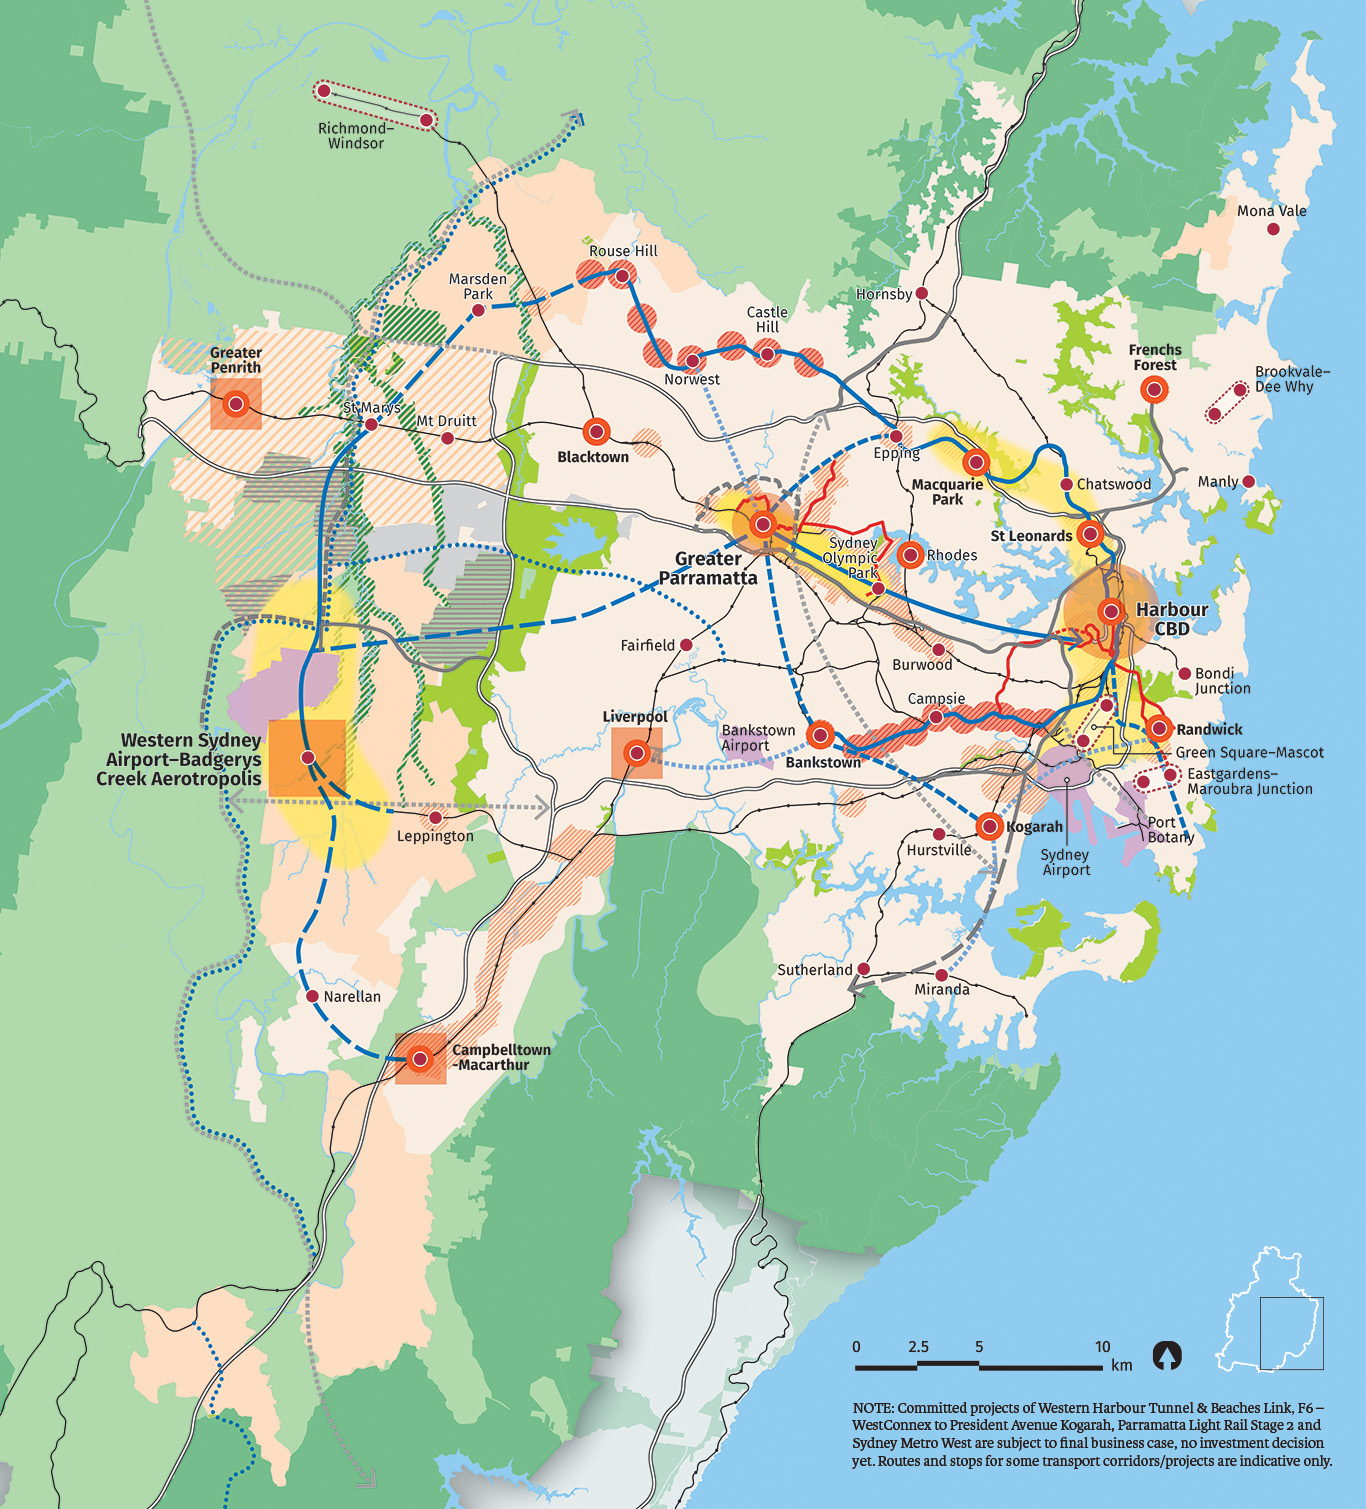 Map showing zoomed in detail of the structure Plan for Greater Sydney.